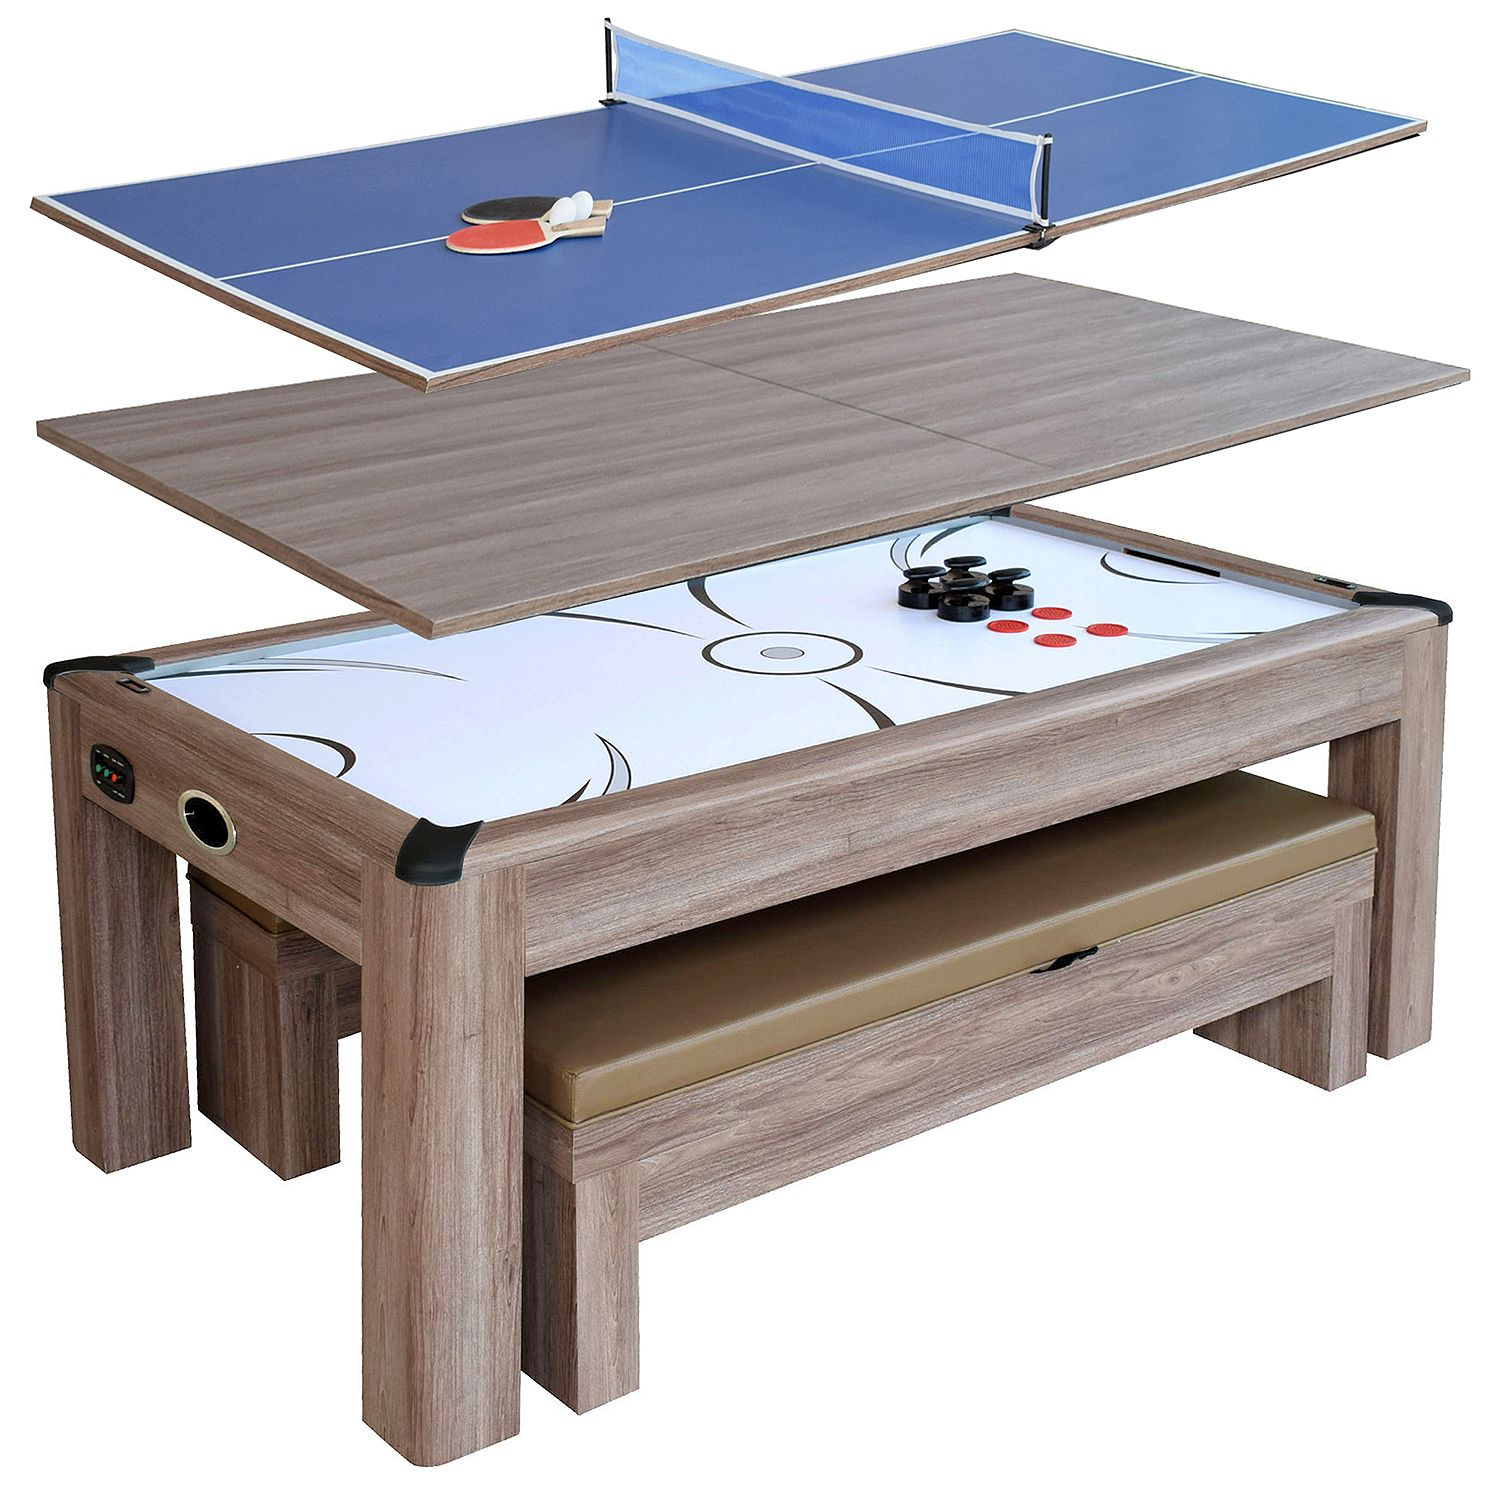 Driftwood 7 Ft Air Hockey Table Combo Set With Benches